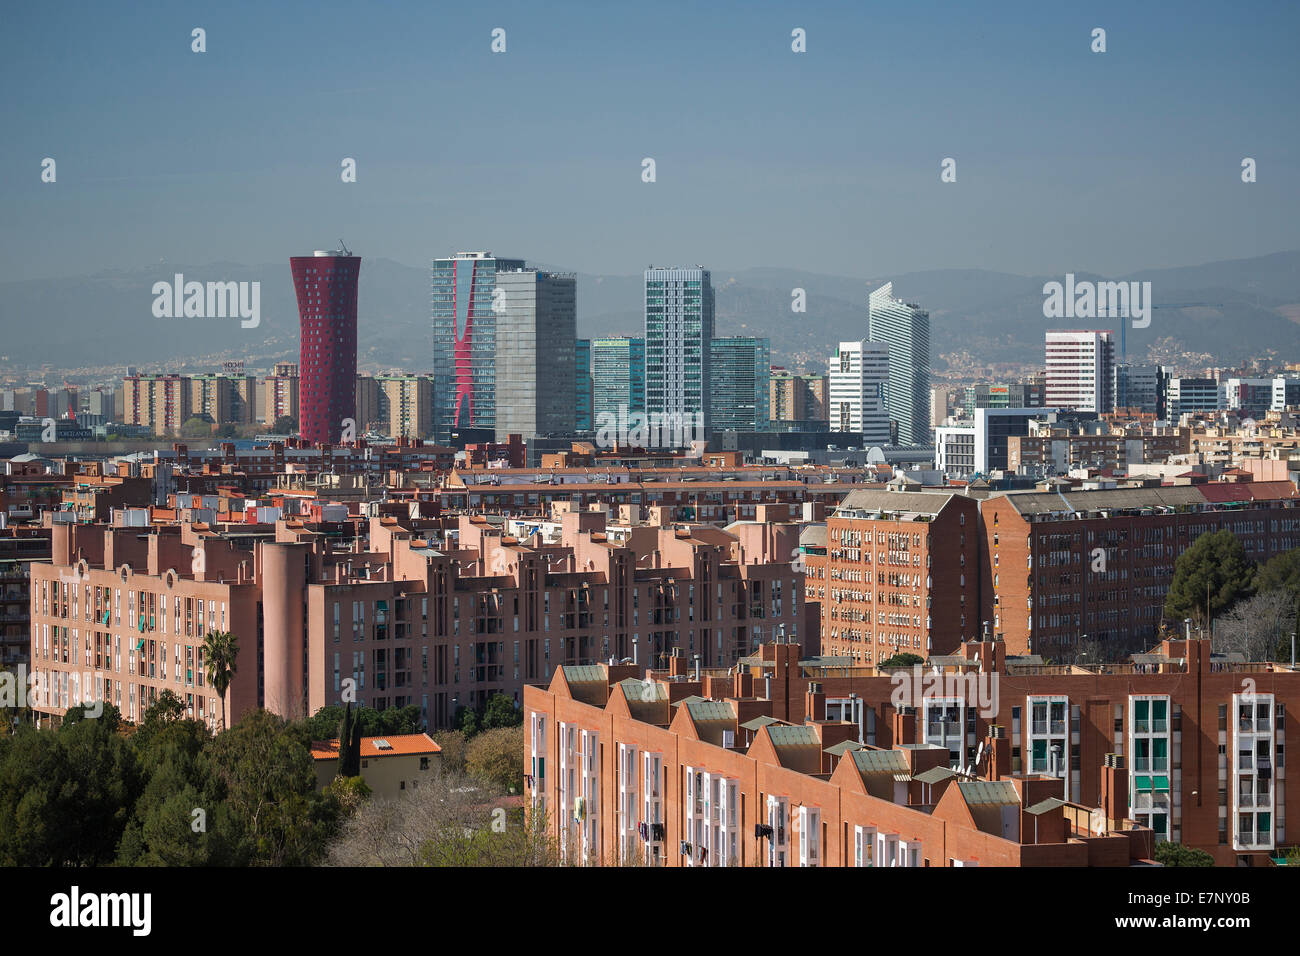 Barcelona, Catalonia, City, Europa Square, Hospitalet, Spain, Europe, architecture, new, roofs, skyline, tourism, - Stock Image